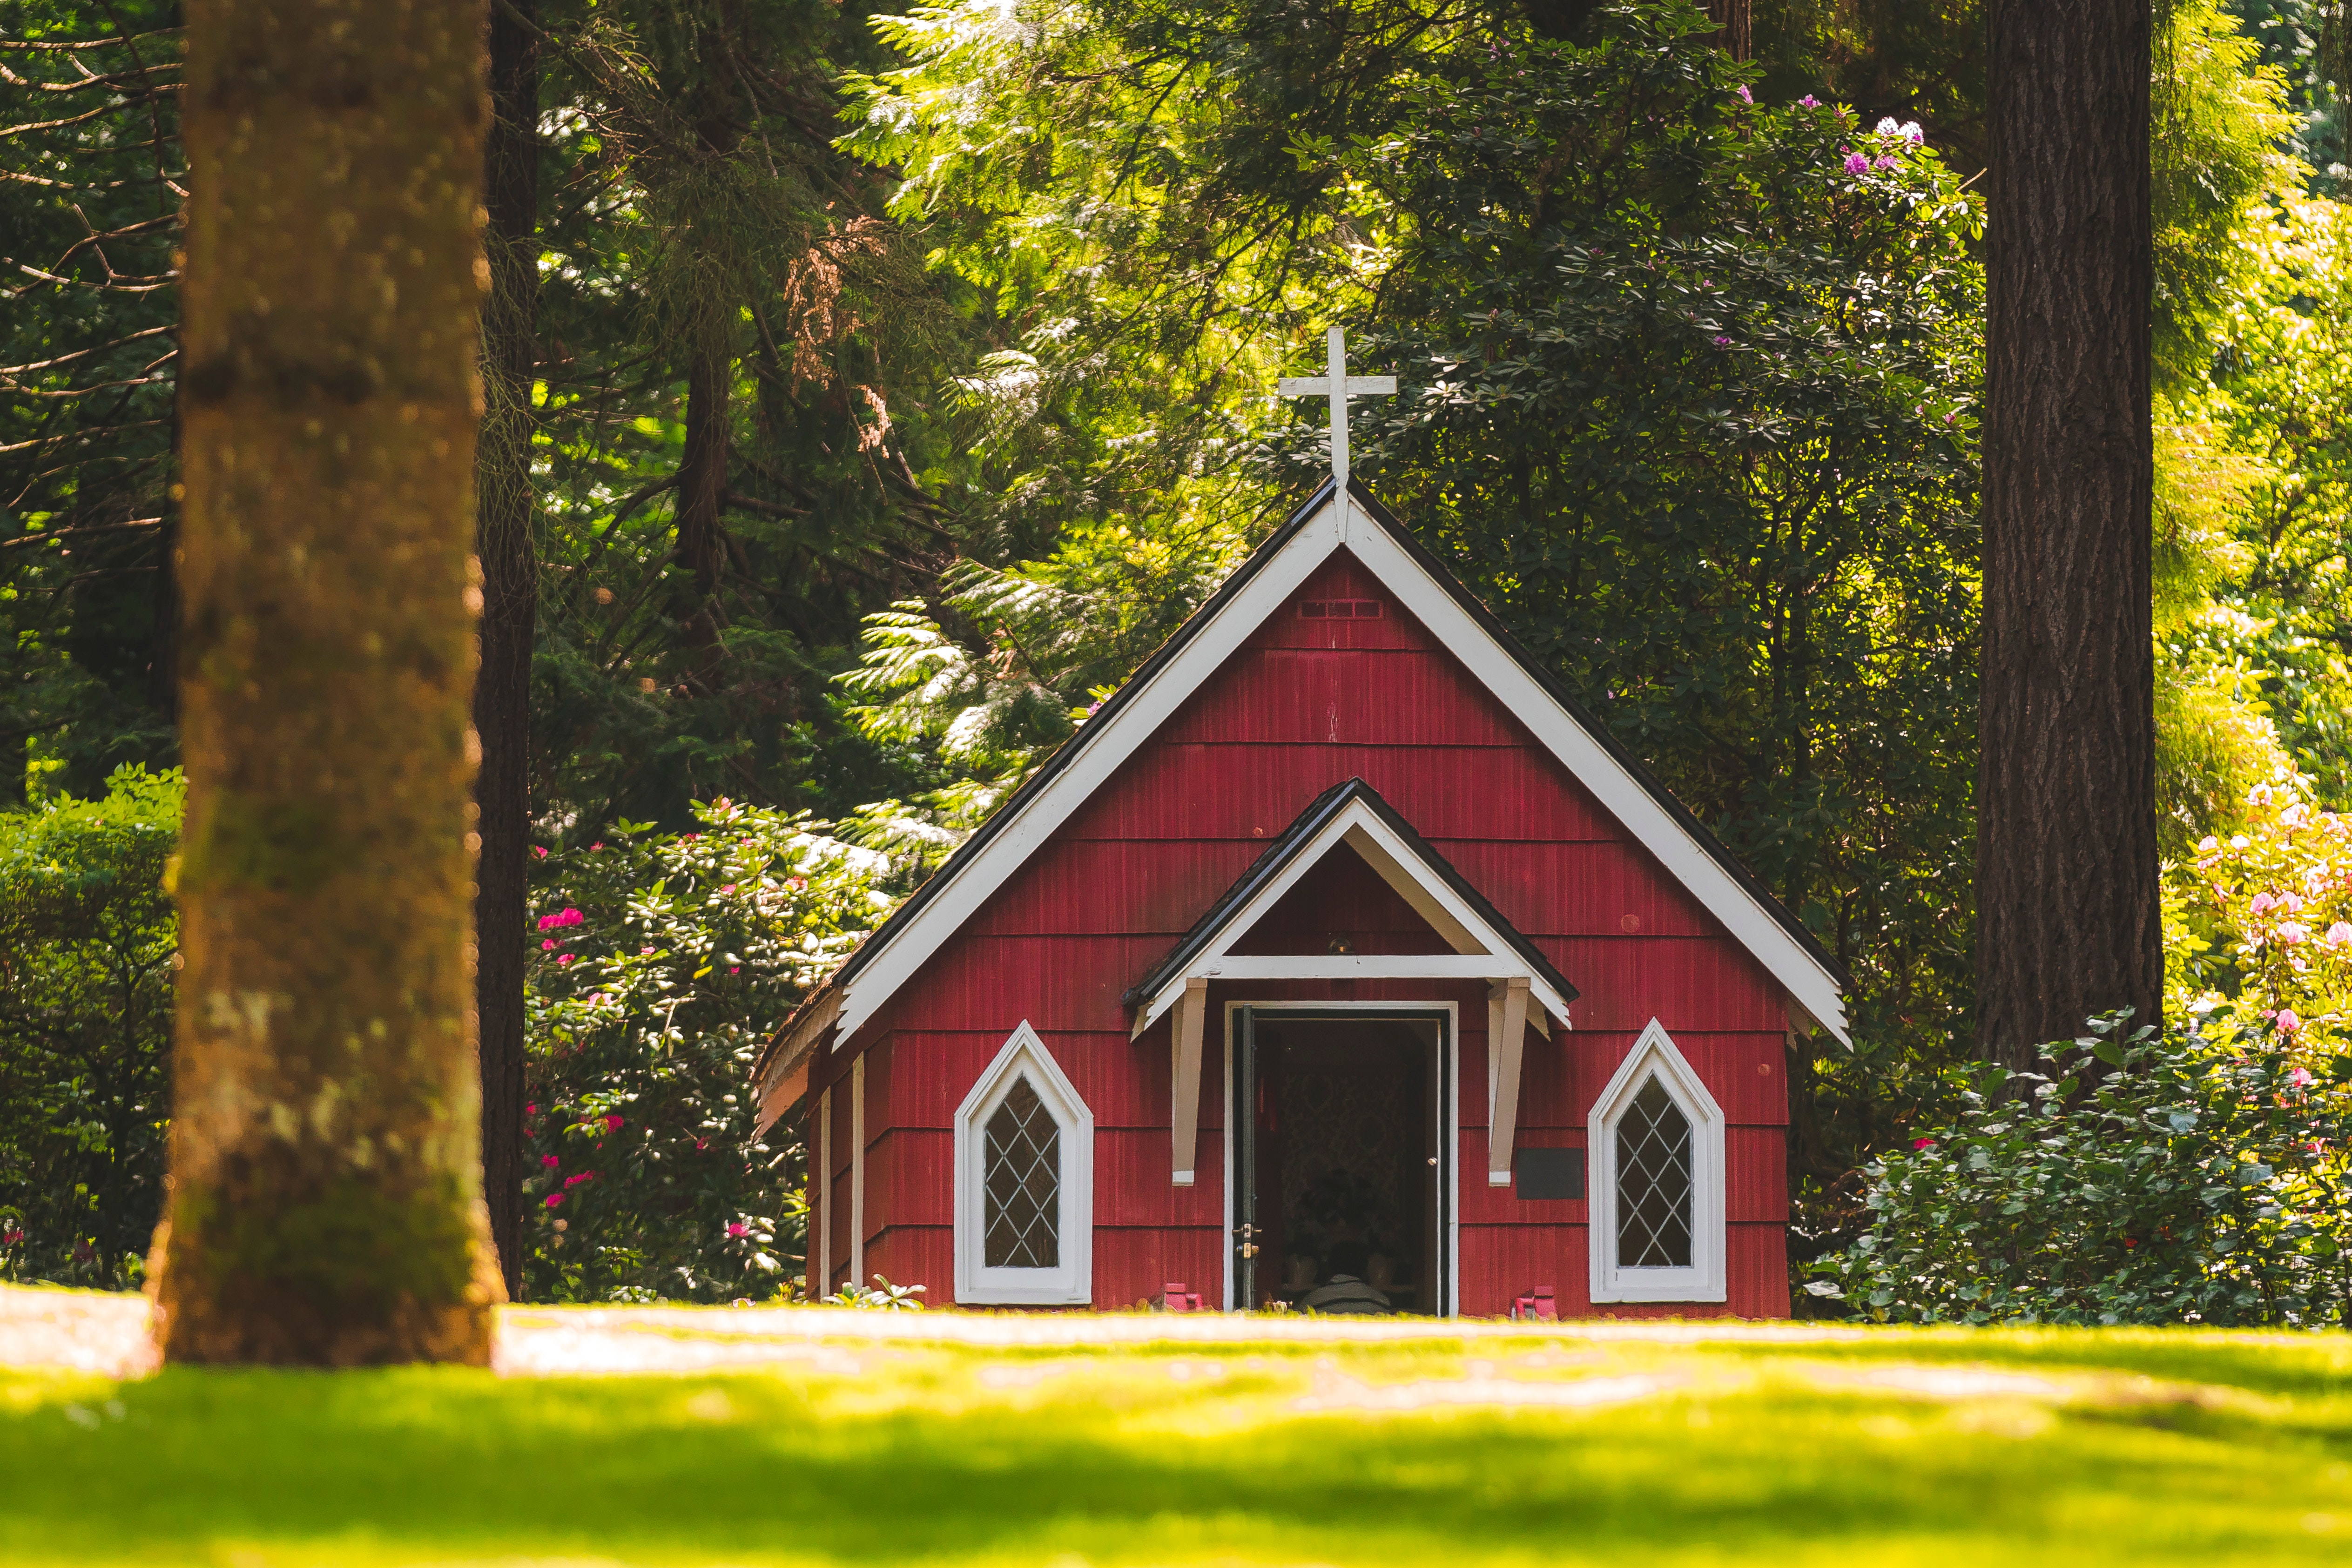 Red chapel on grassy field with trees photo